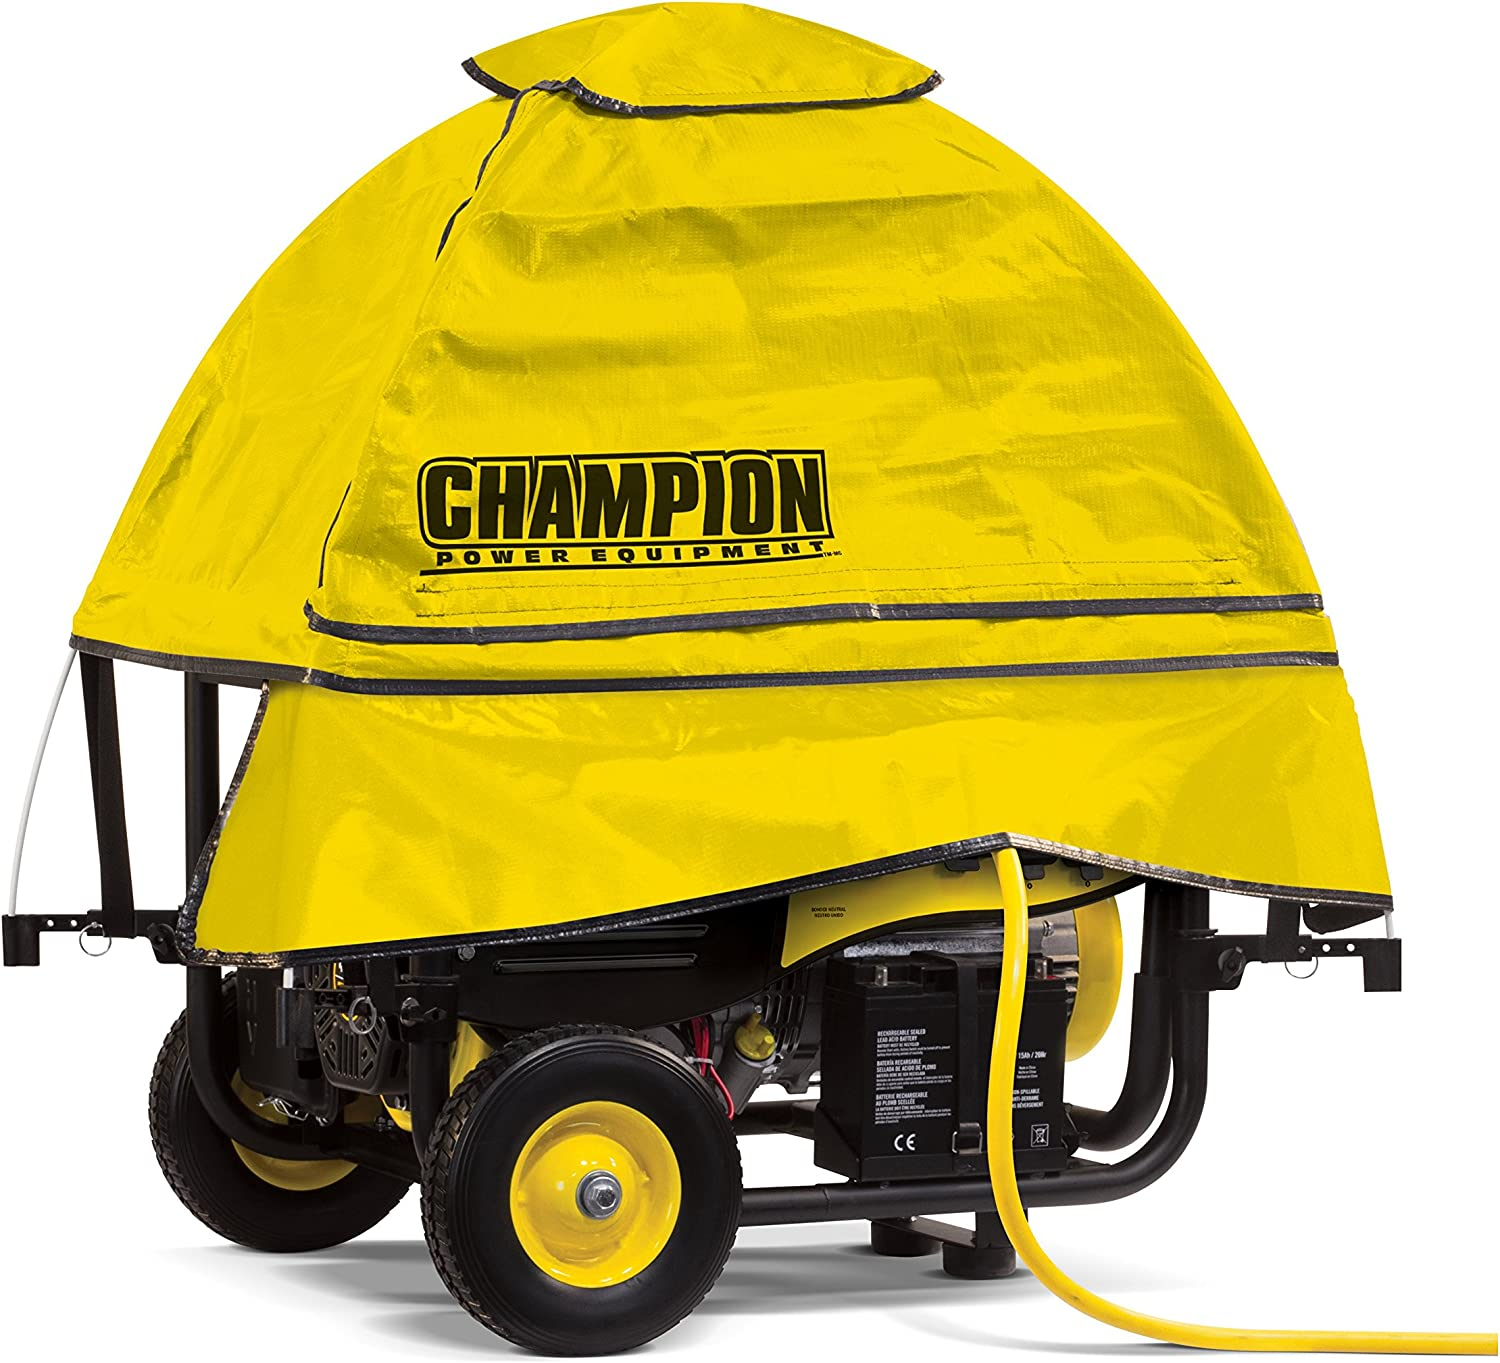 Champion Power Equipment Generator Cover Protection Large Weather Proof Vinyl